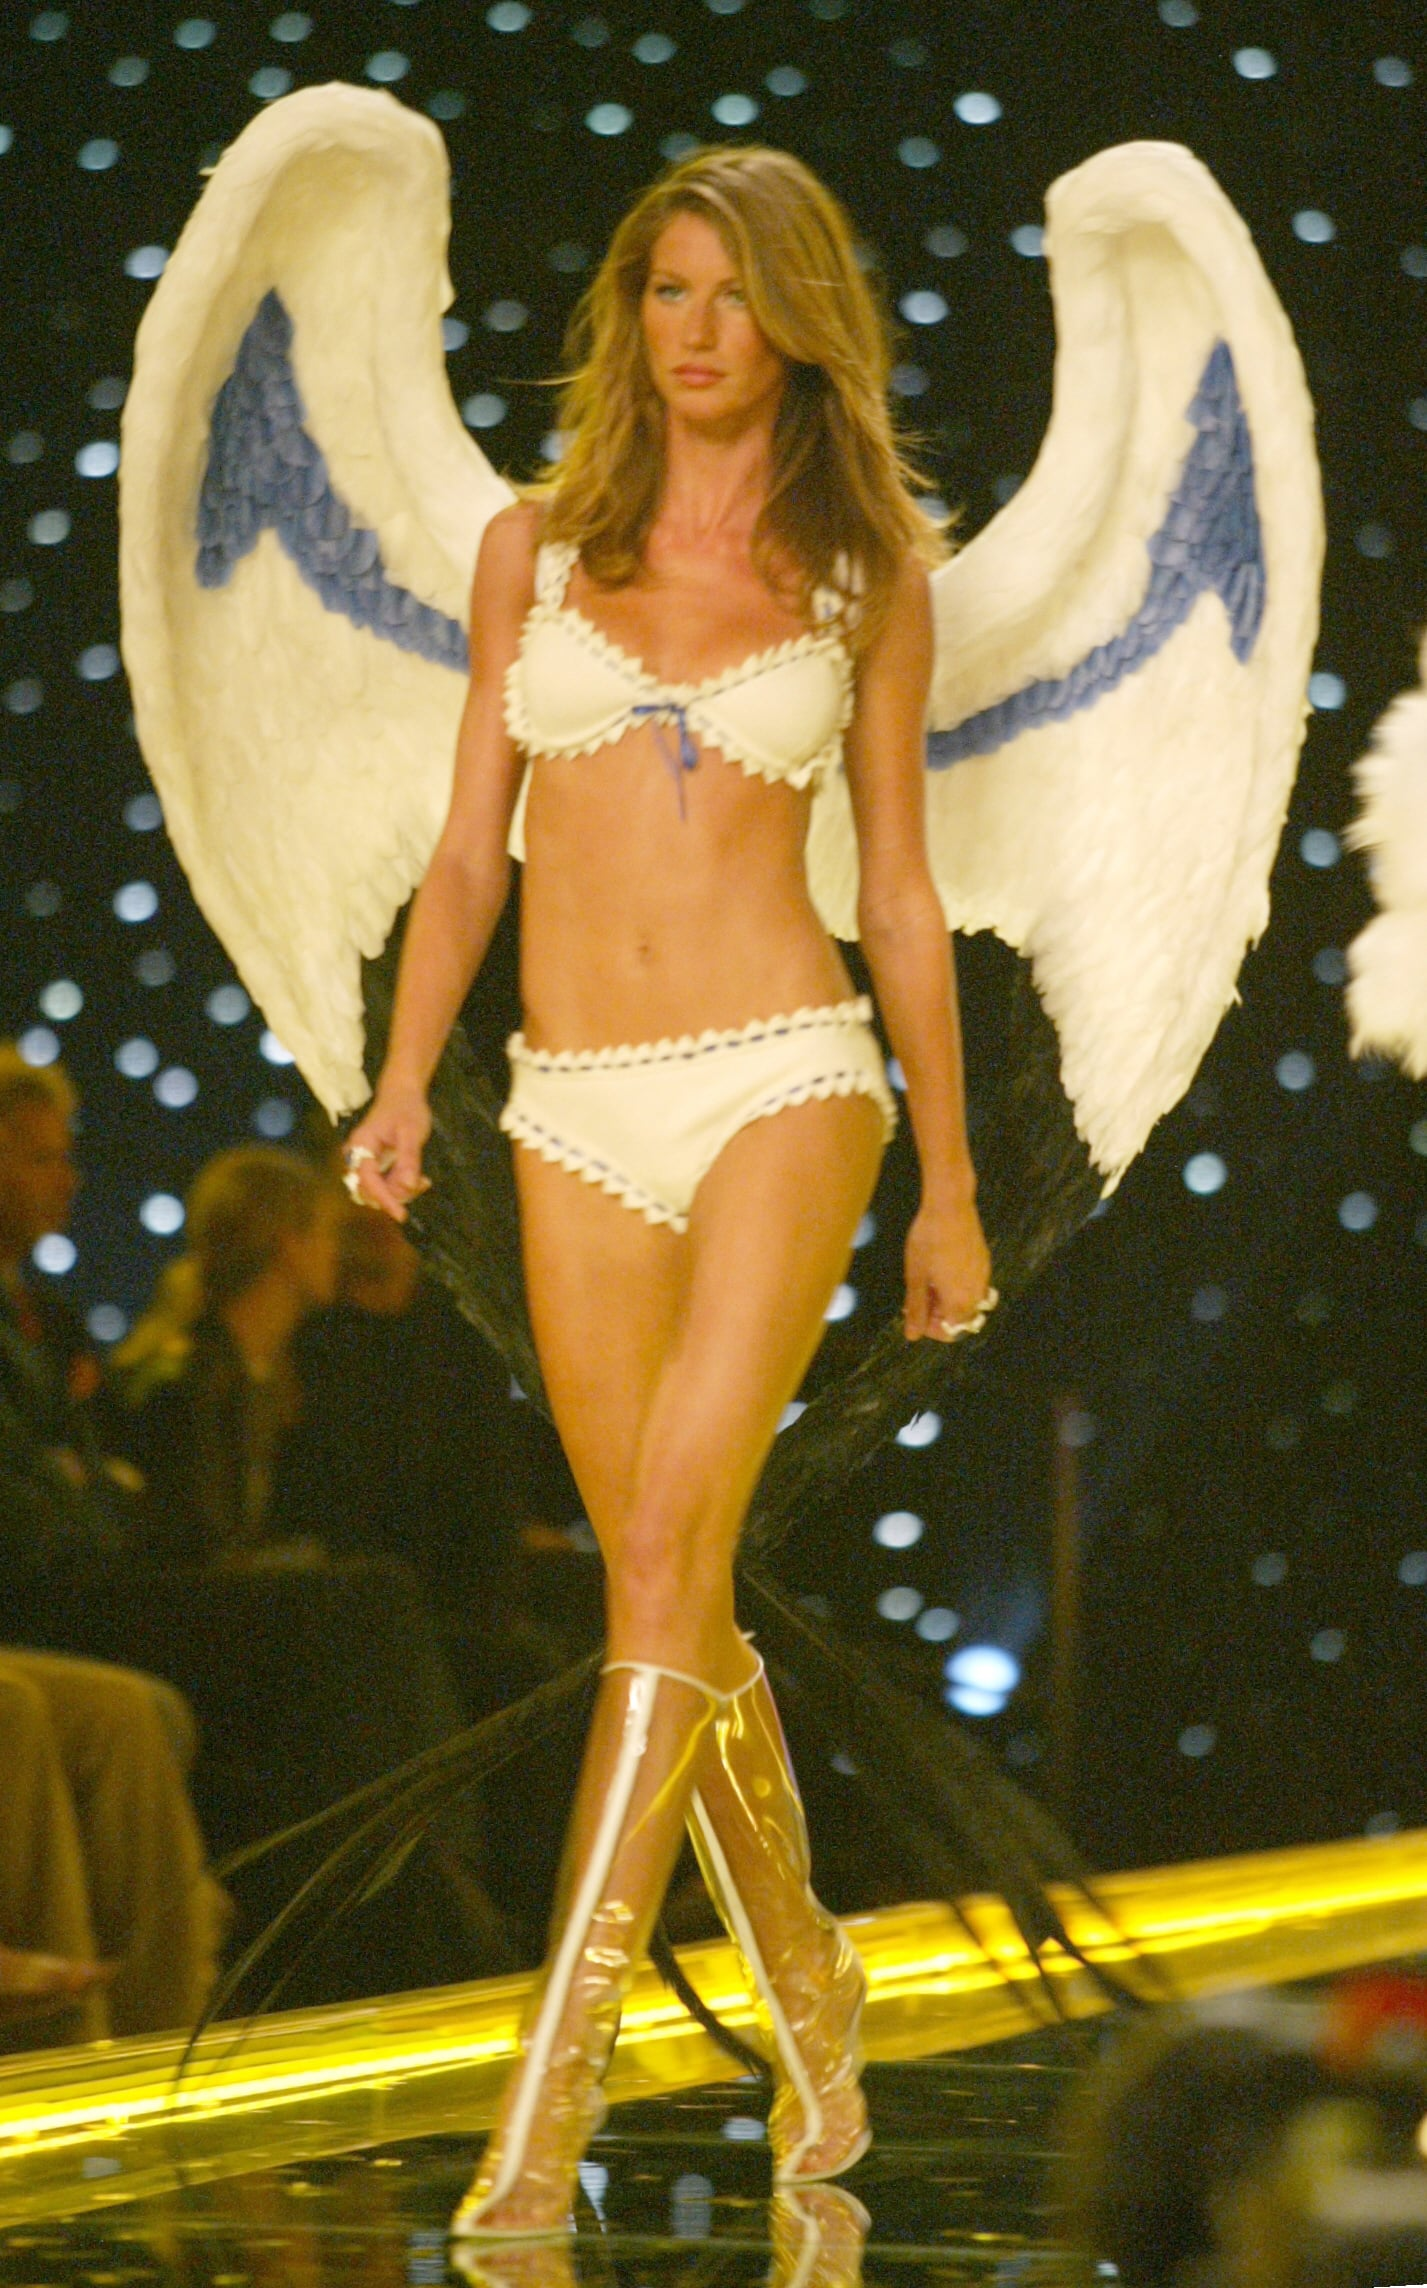 Gisele Bundchen strutted her stuff as one of the original Angels in 2002.